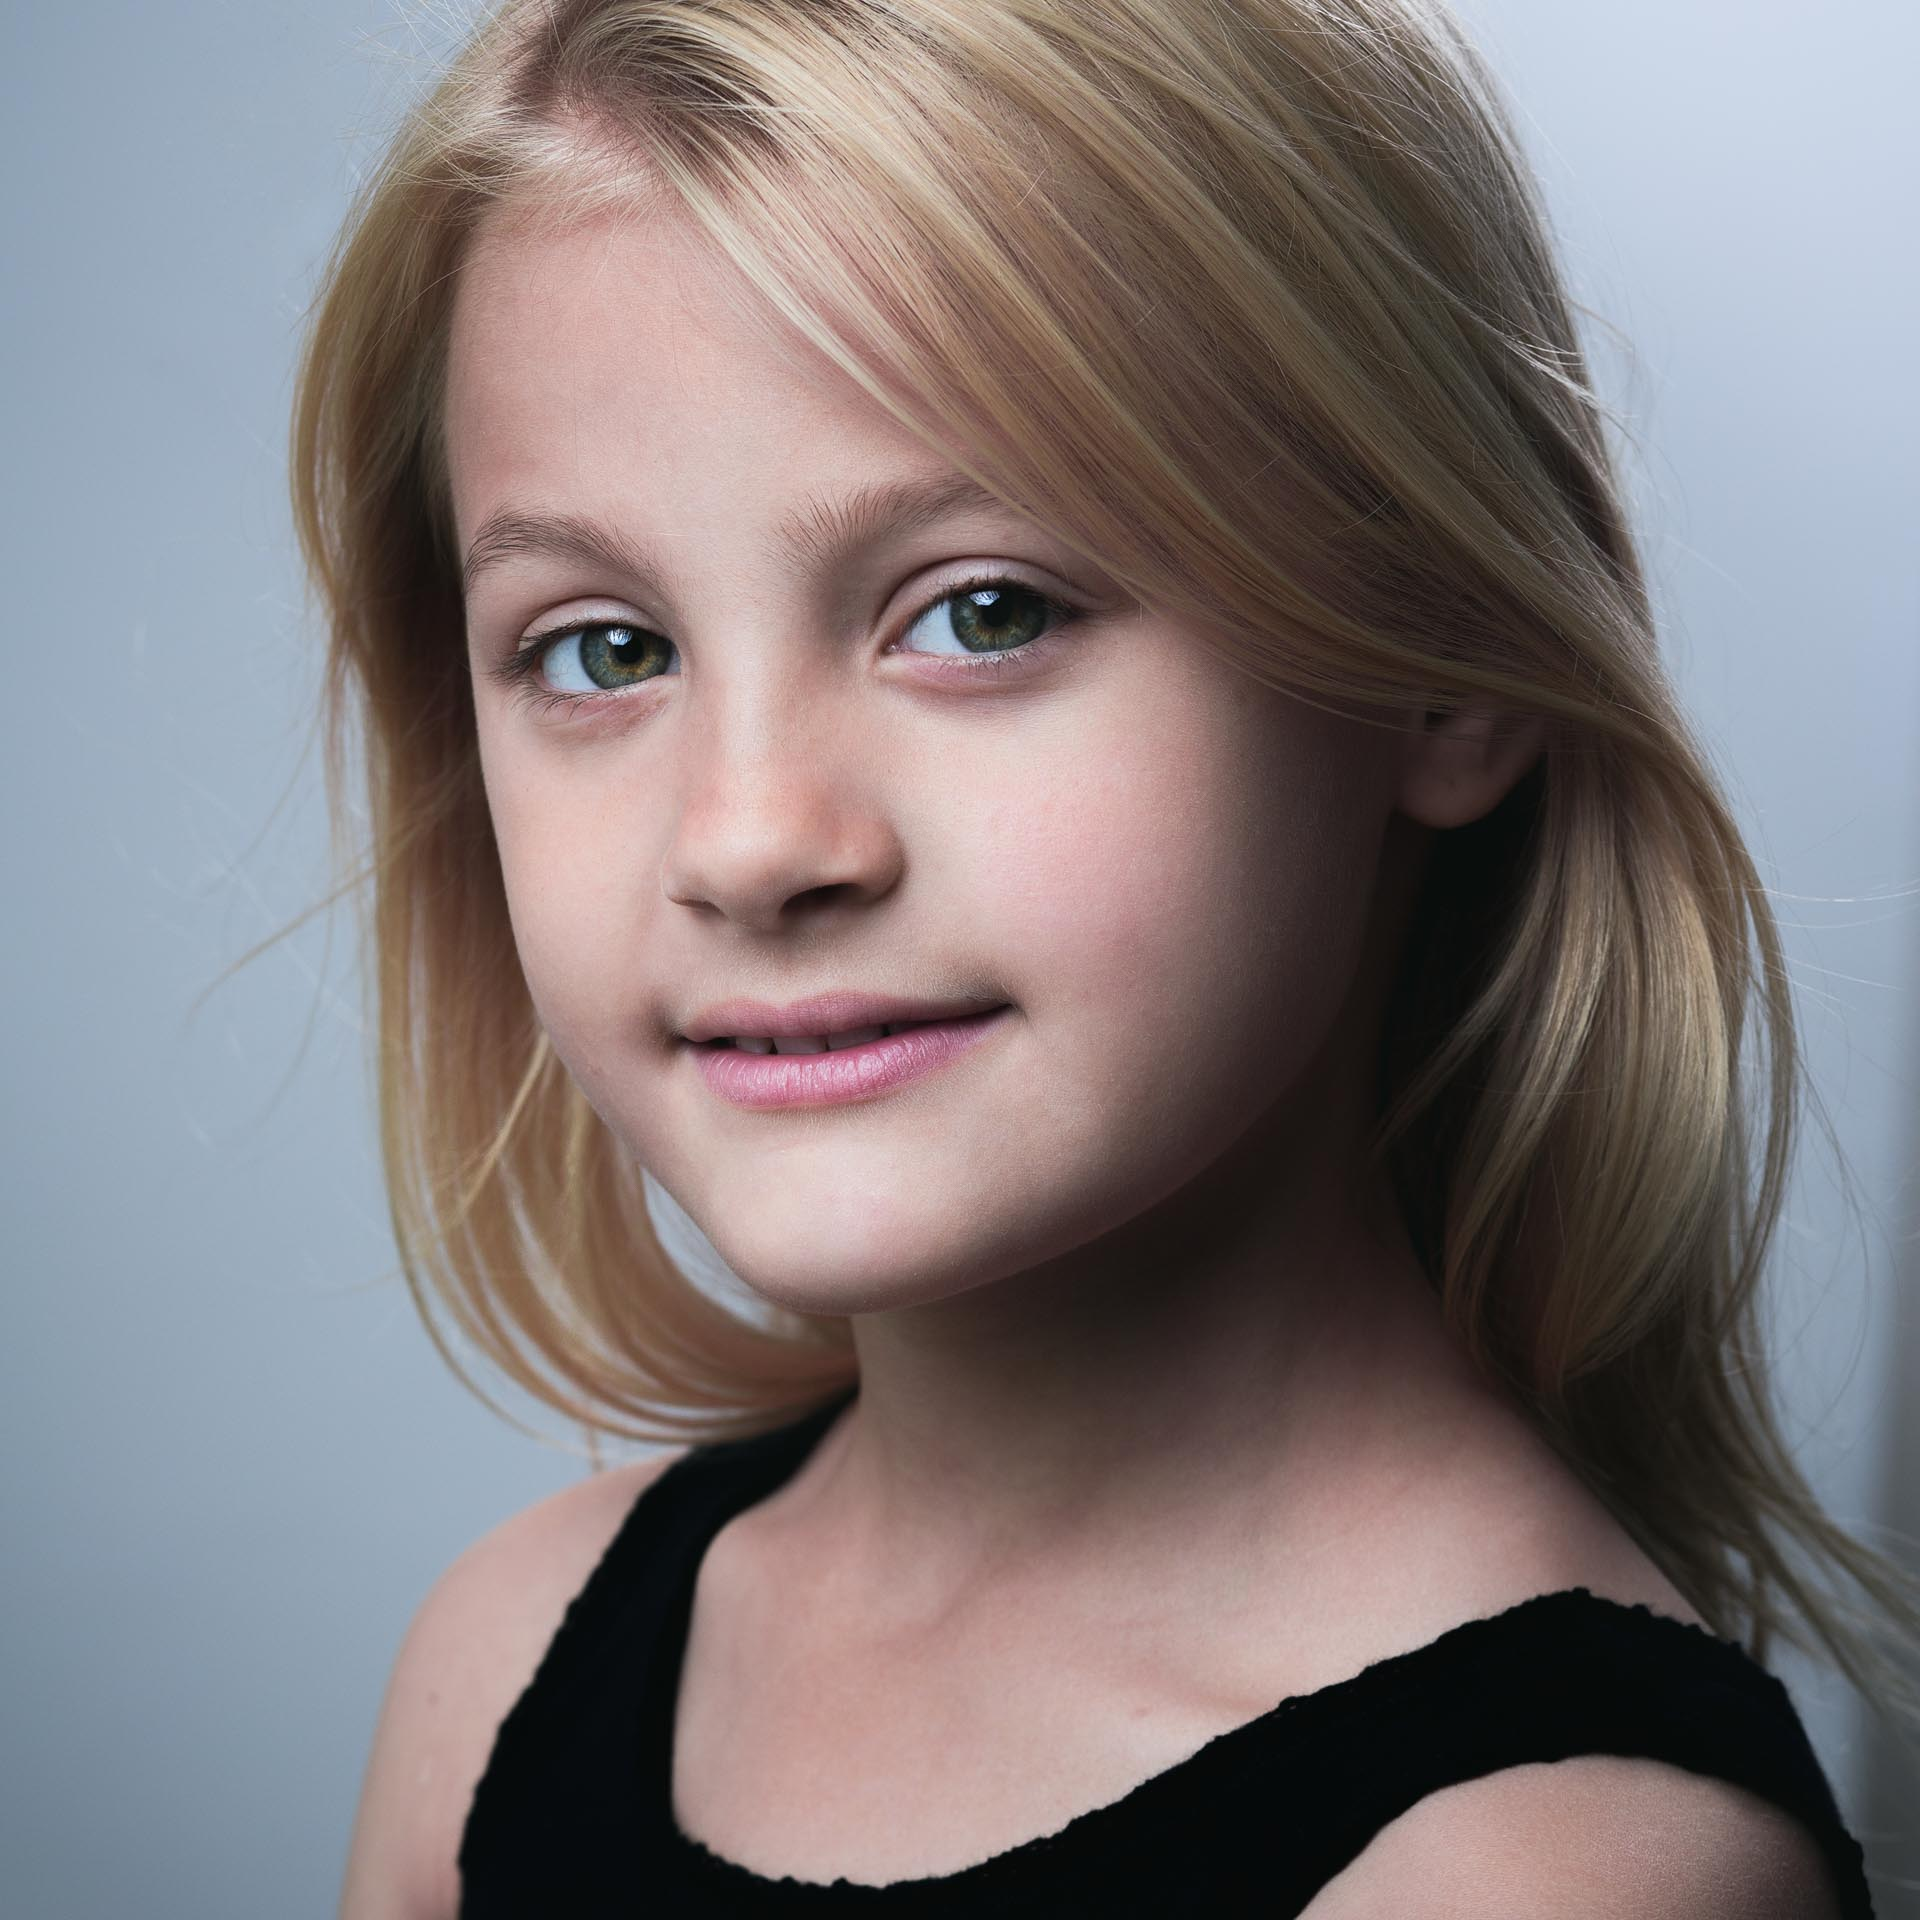 Child actor headshot with Avery